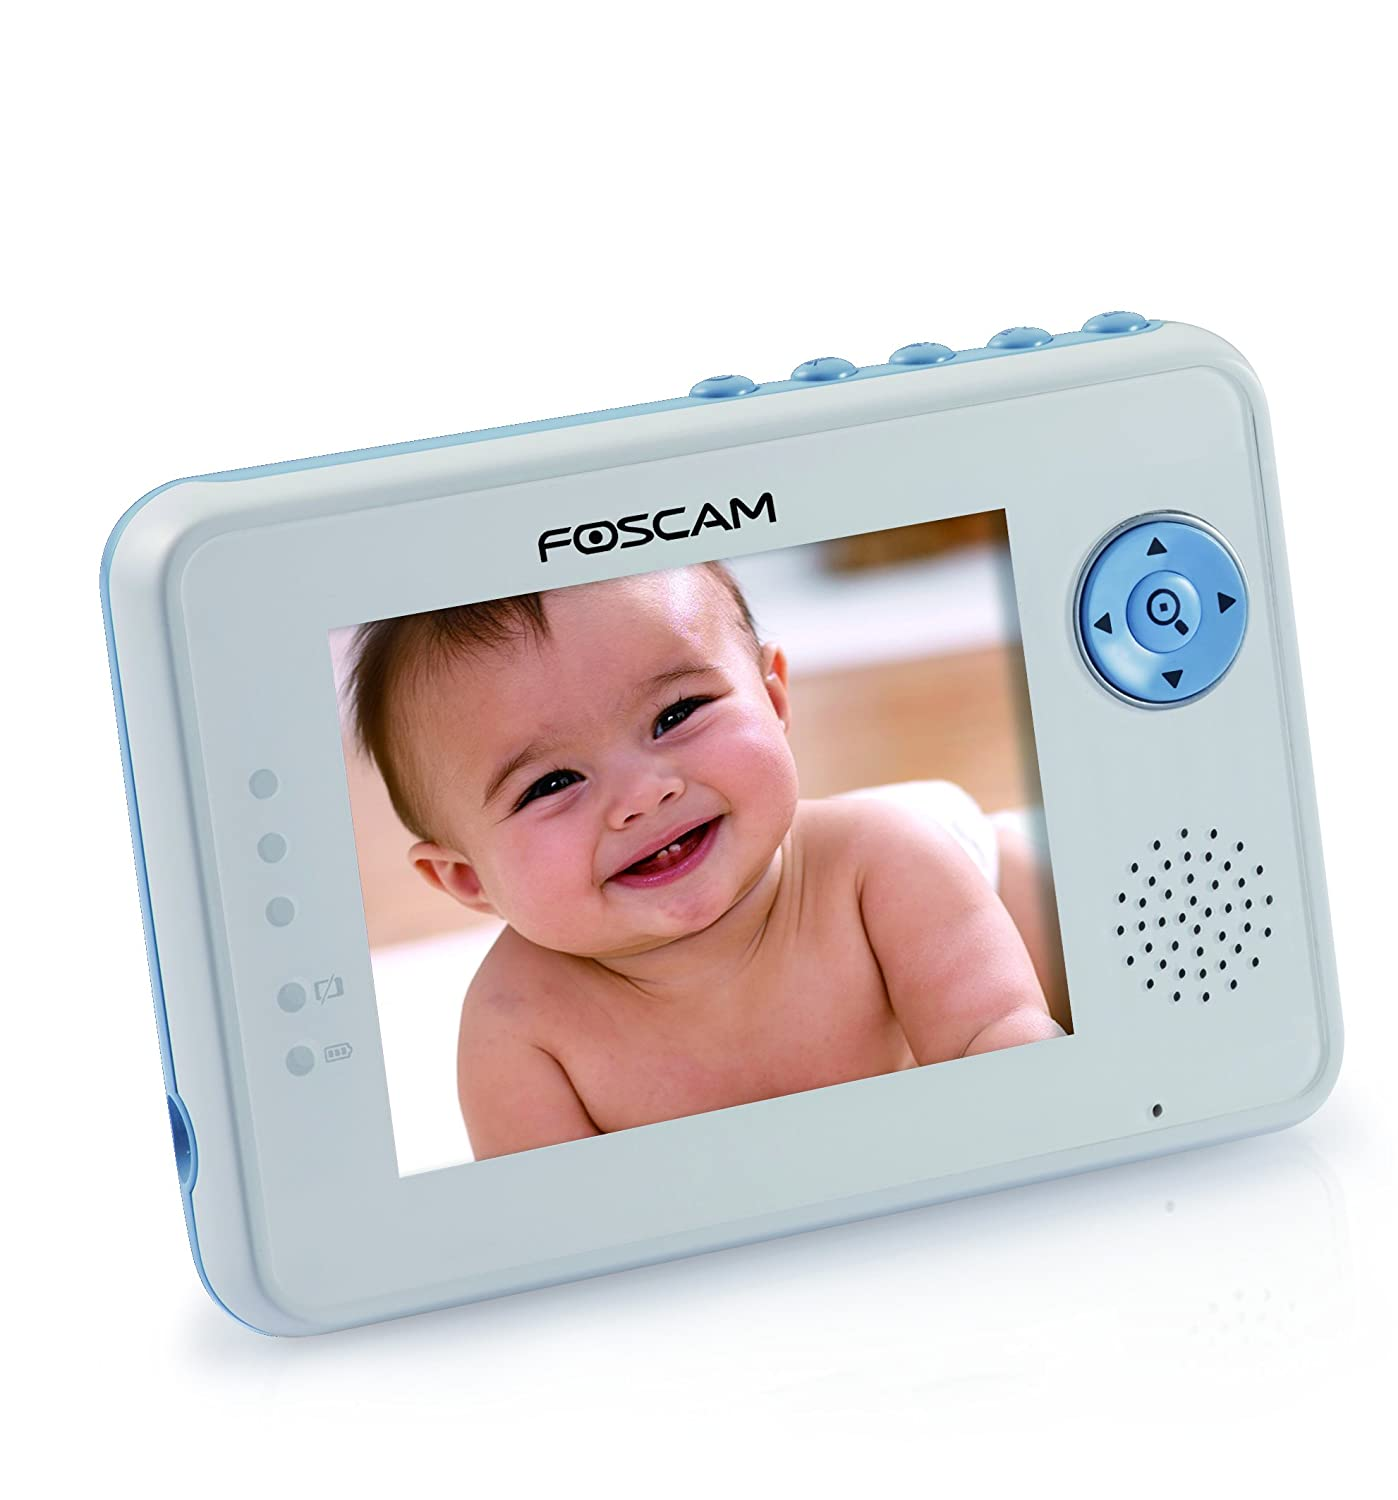 foscam fbm3502 digital video baby monitor auto motion tracking white blue ebay. Black Bedroom Furniture Sets. Home Design Ideas